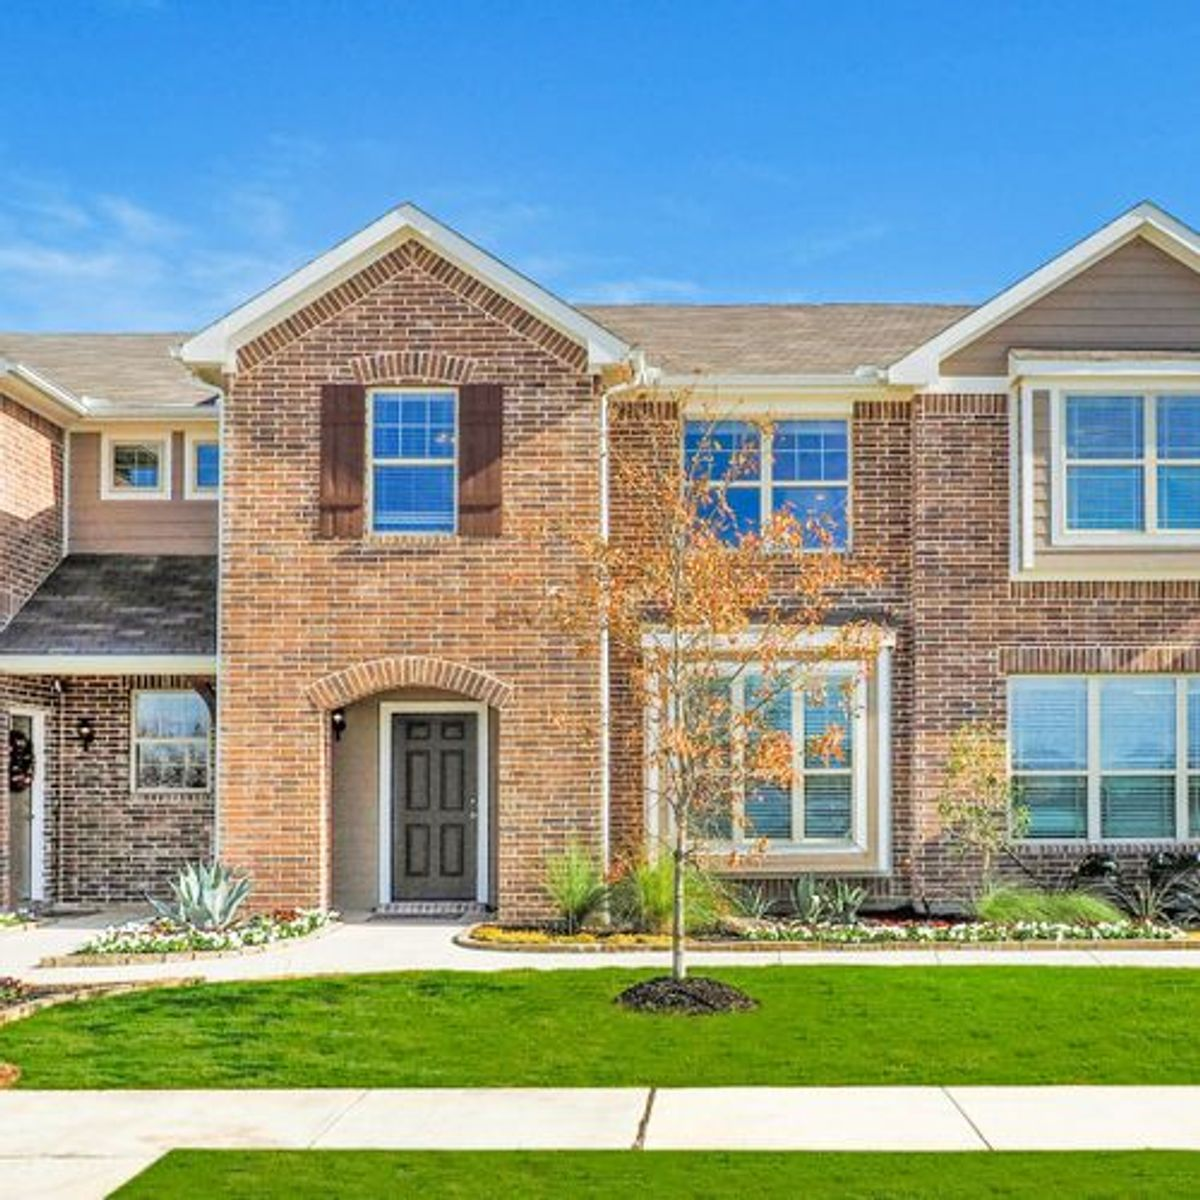 Featured Community: Meet Brentwood Place Townhomes in Denton